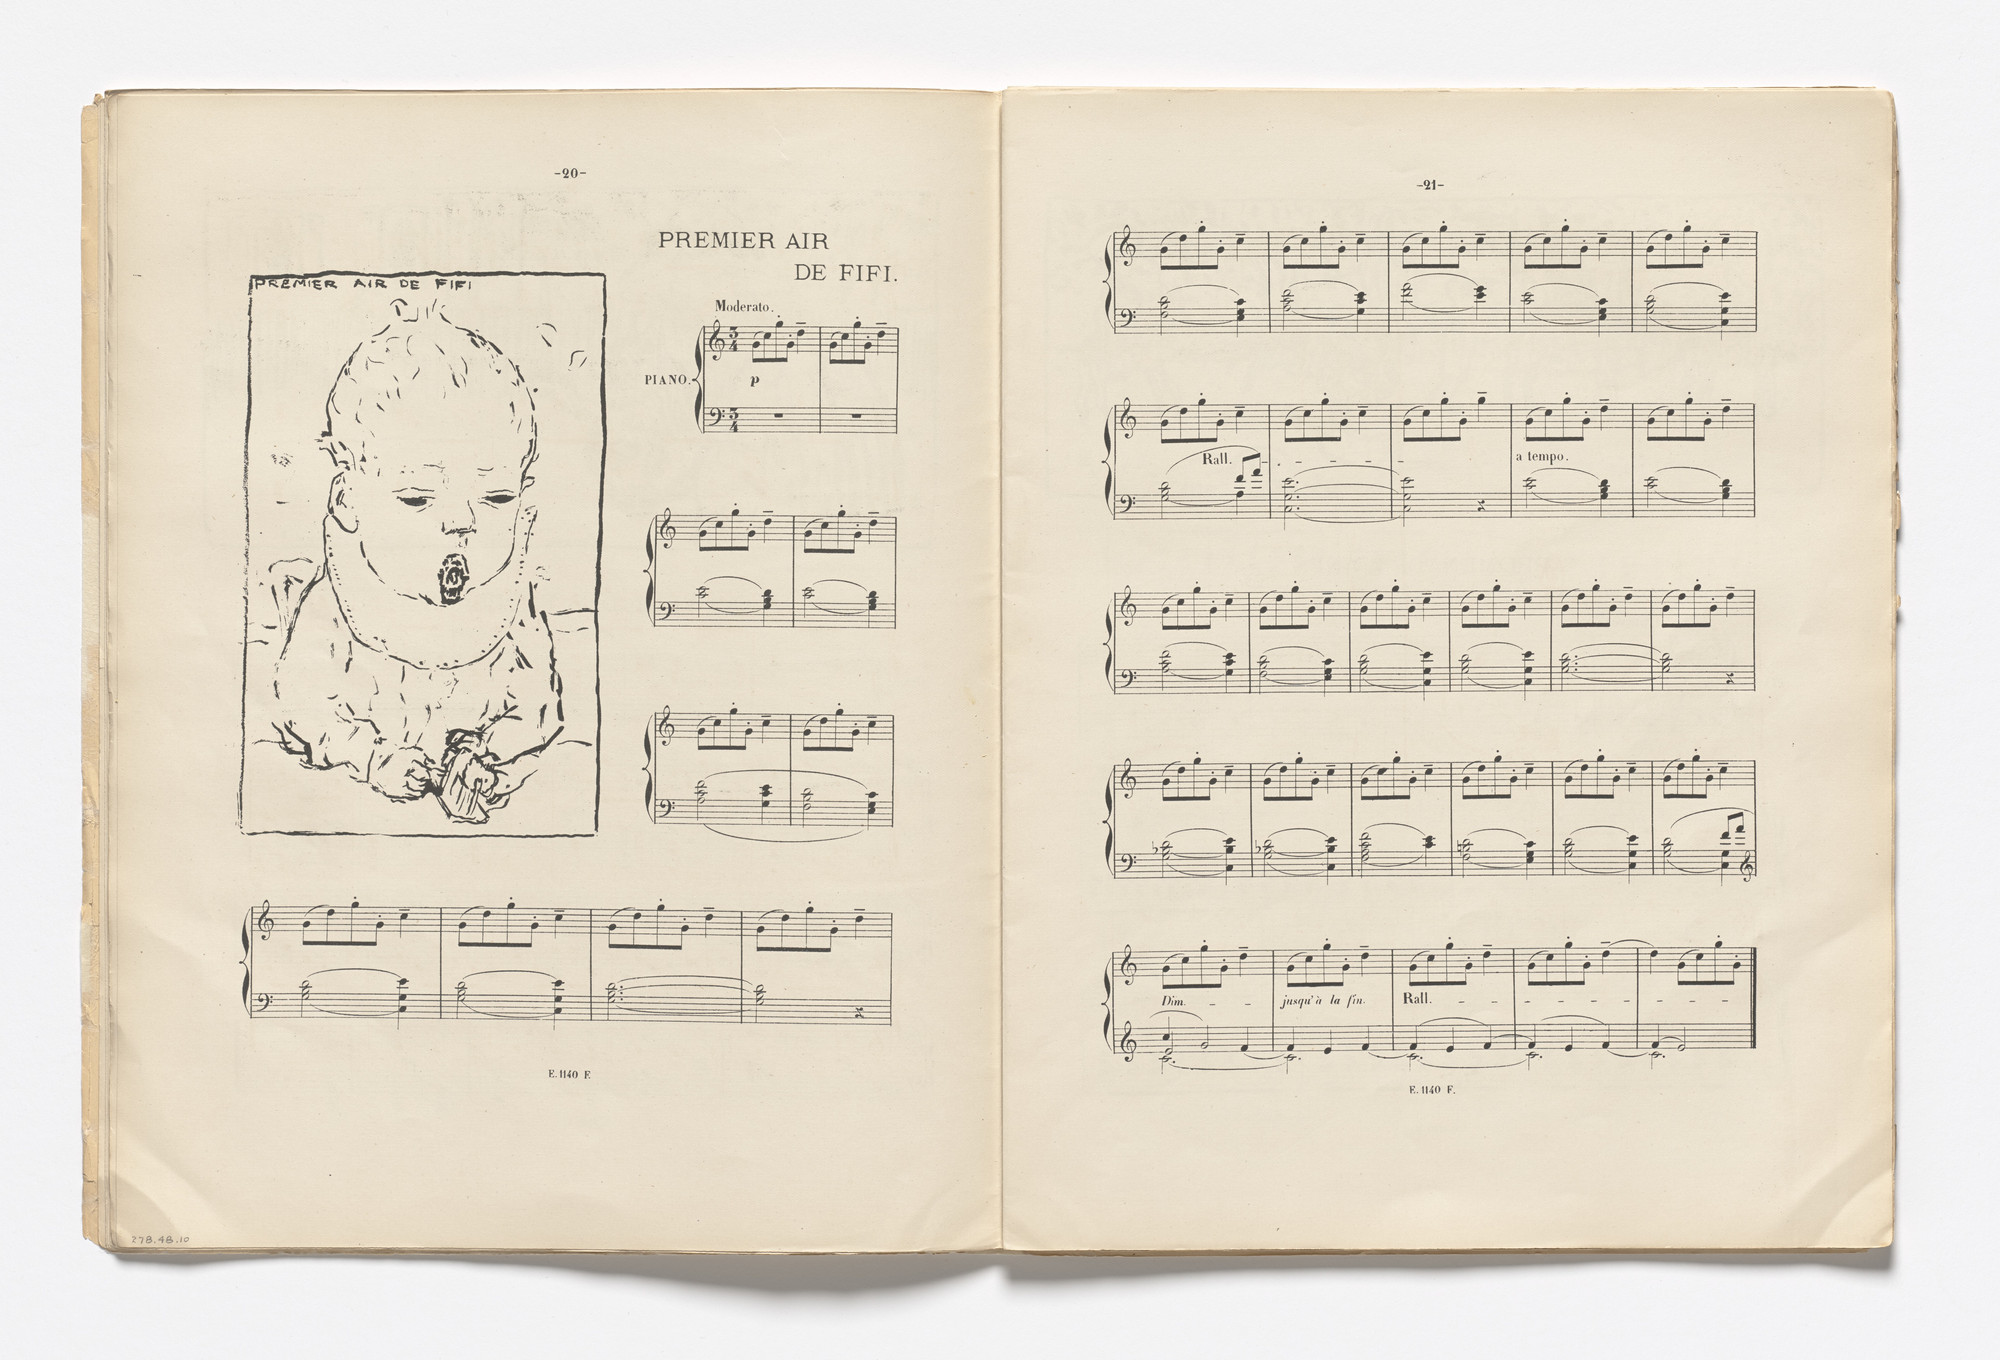 Pierre Bonnard. Fifi's First Song (Premier air de Fifi) (headpiece, page 20) from Petites scènes familières. 1893–94, published 1895